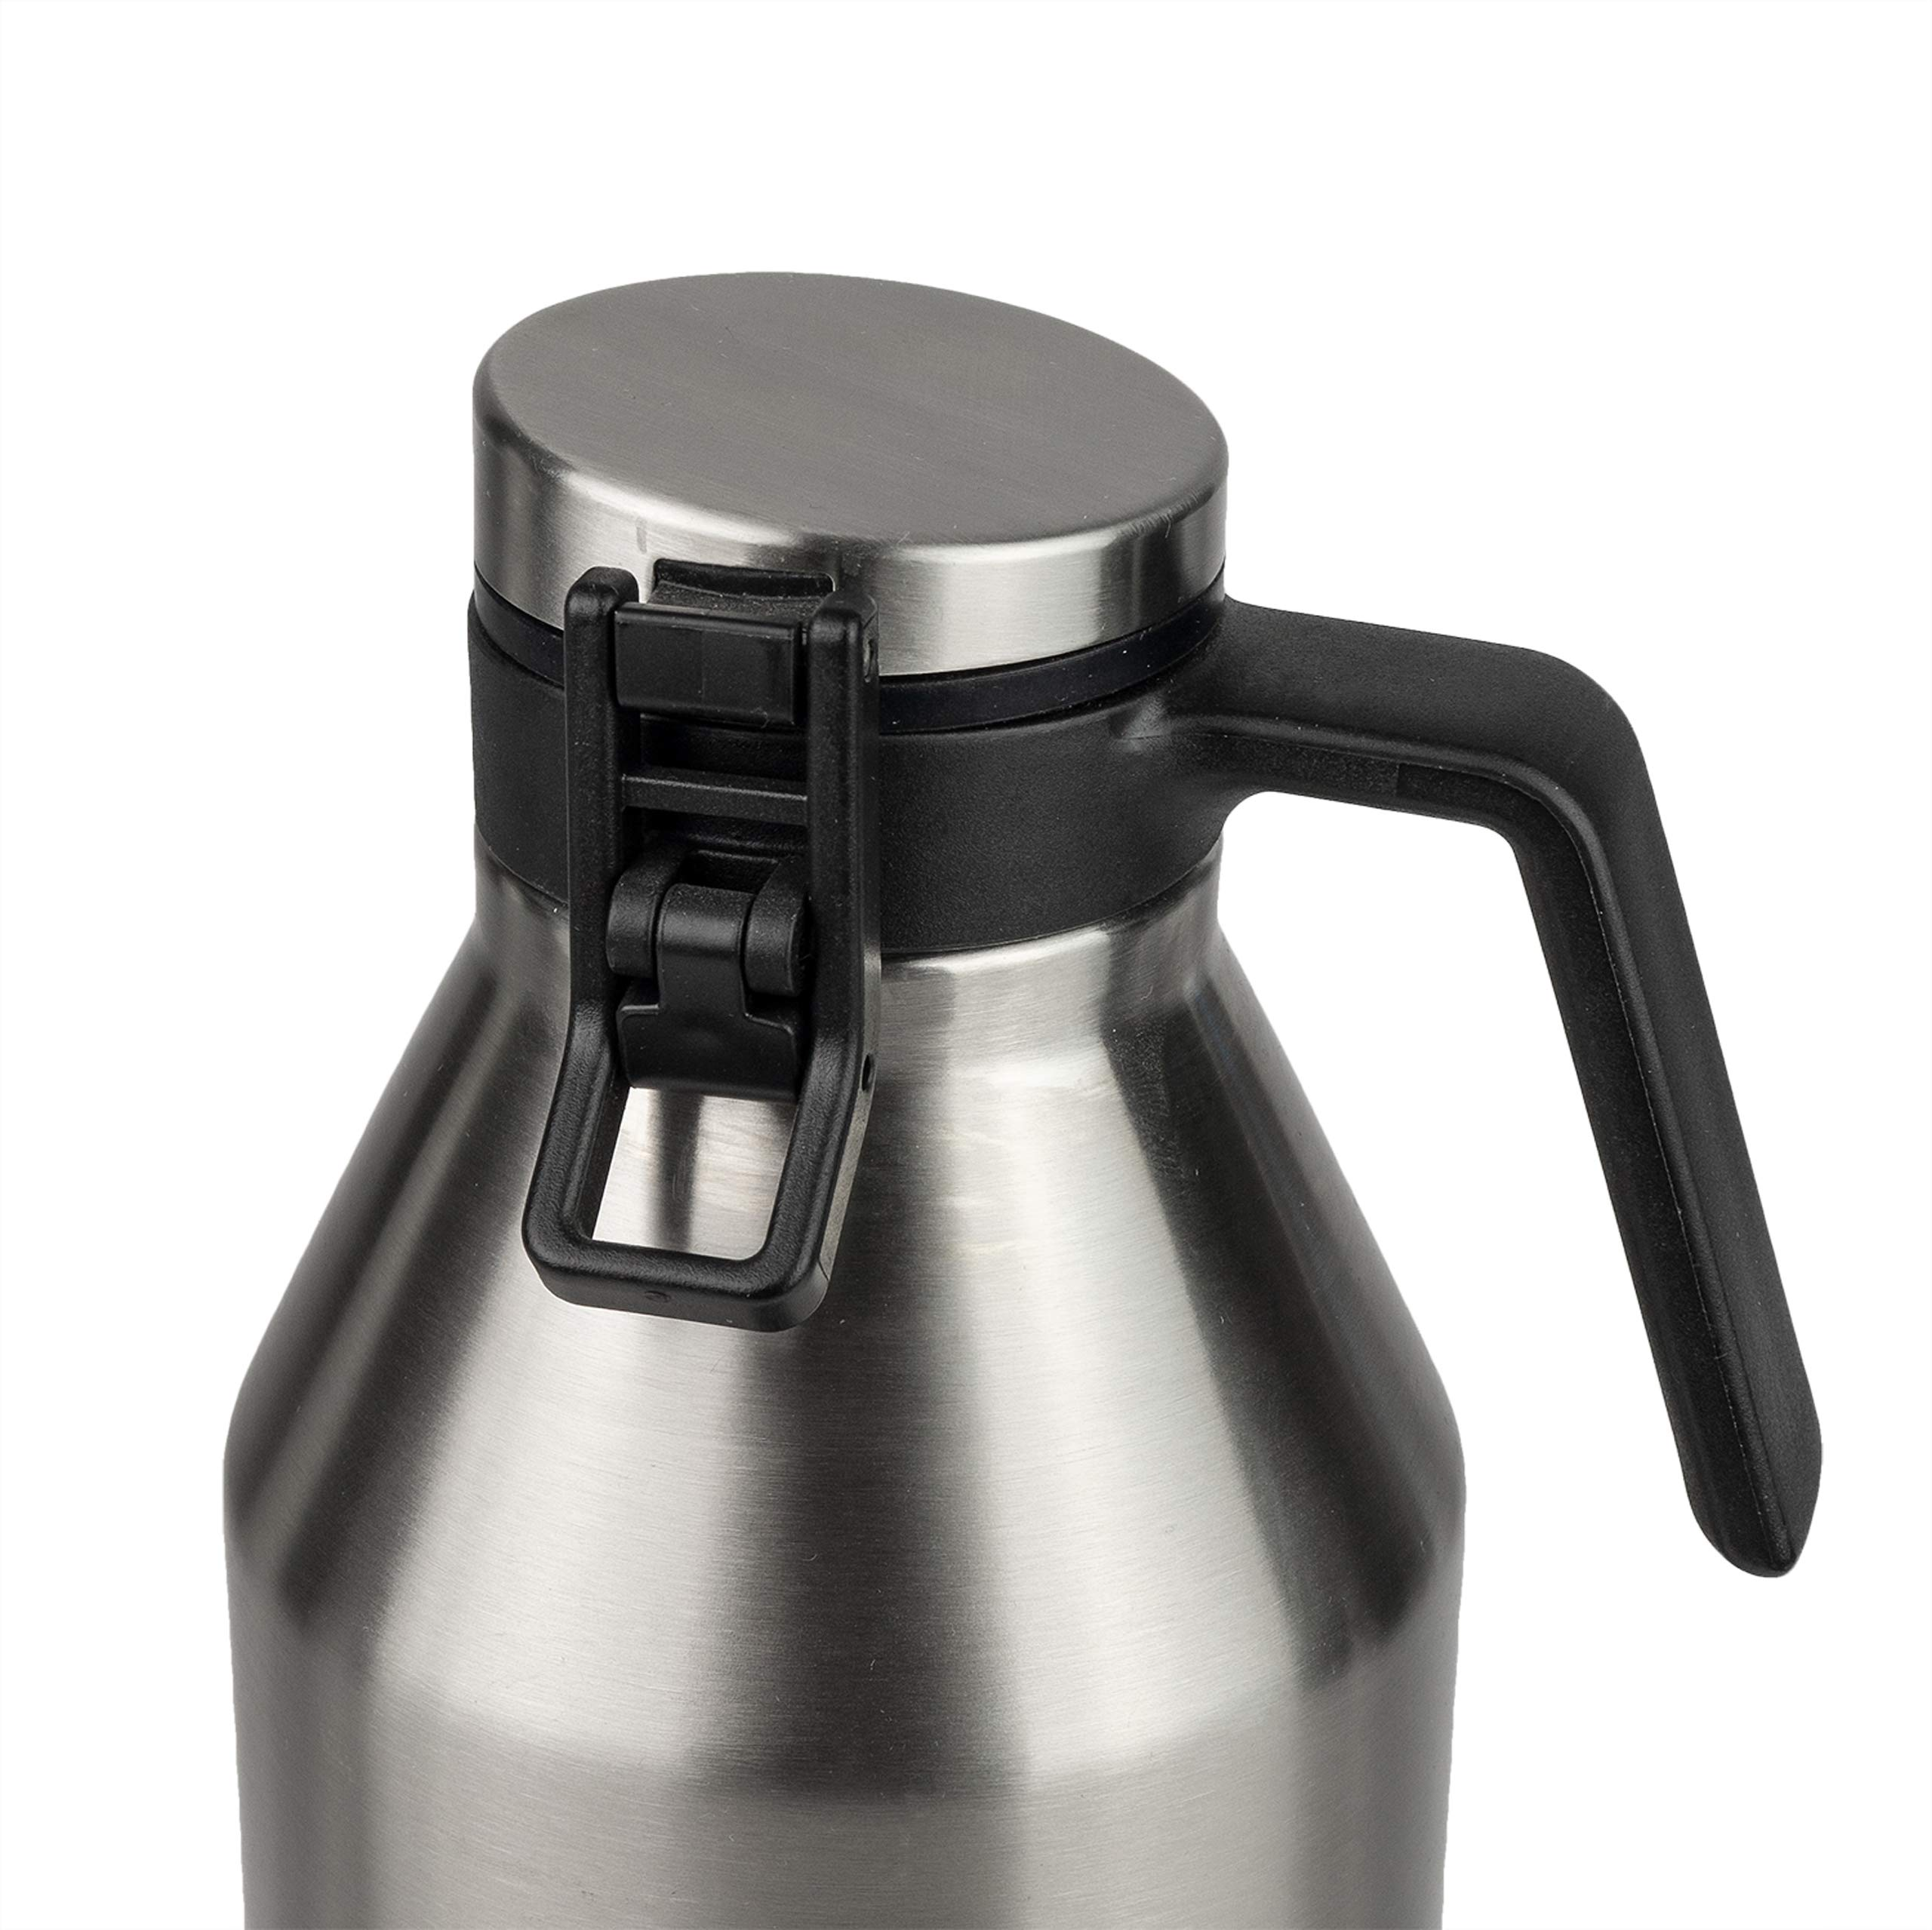 MiiR 64oz Insulated Growler for Beer - Stainless by MiiR (Image #3)